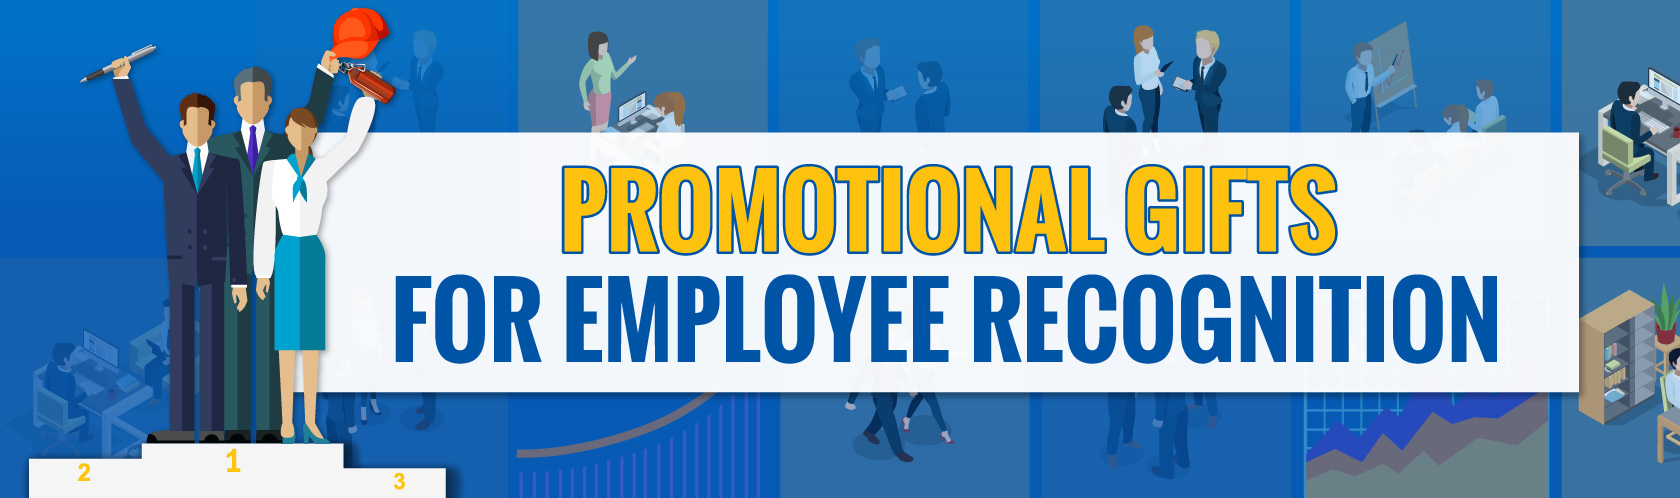 Promotional Gifts for Employee Recognition